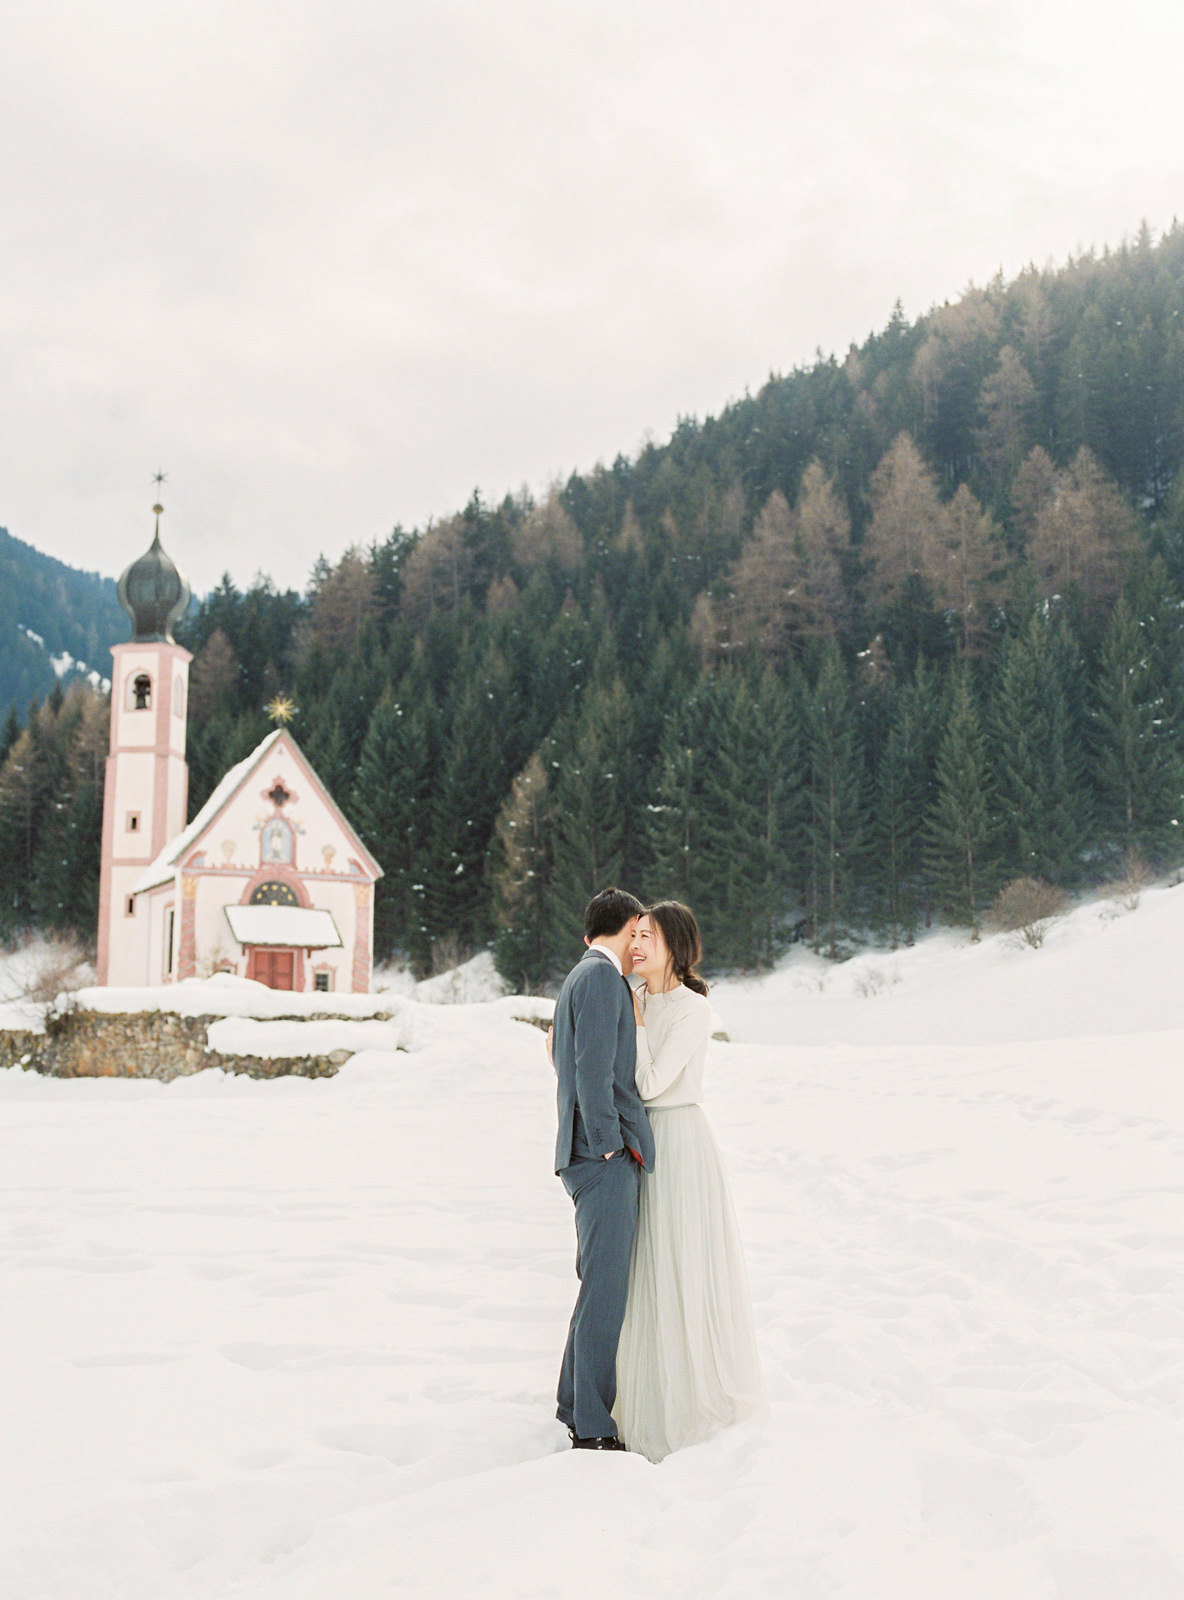 Fine Art Film Photography in Dolomites Italy by CHYMO & MORE